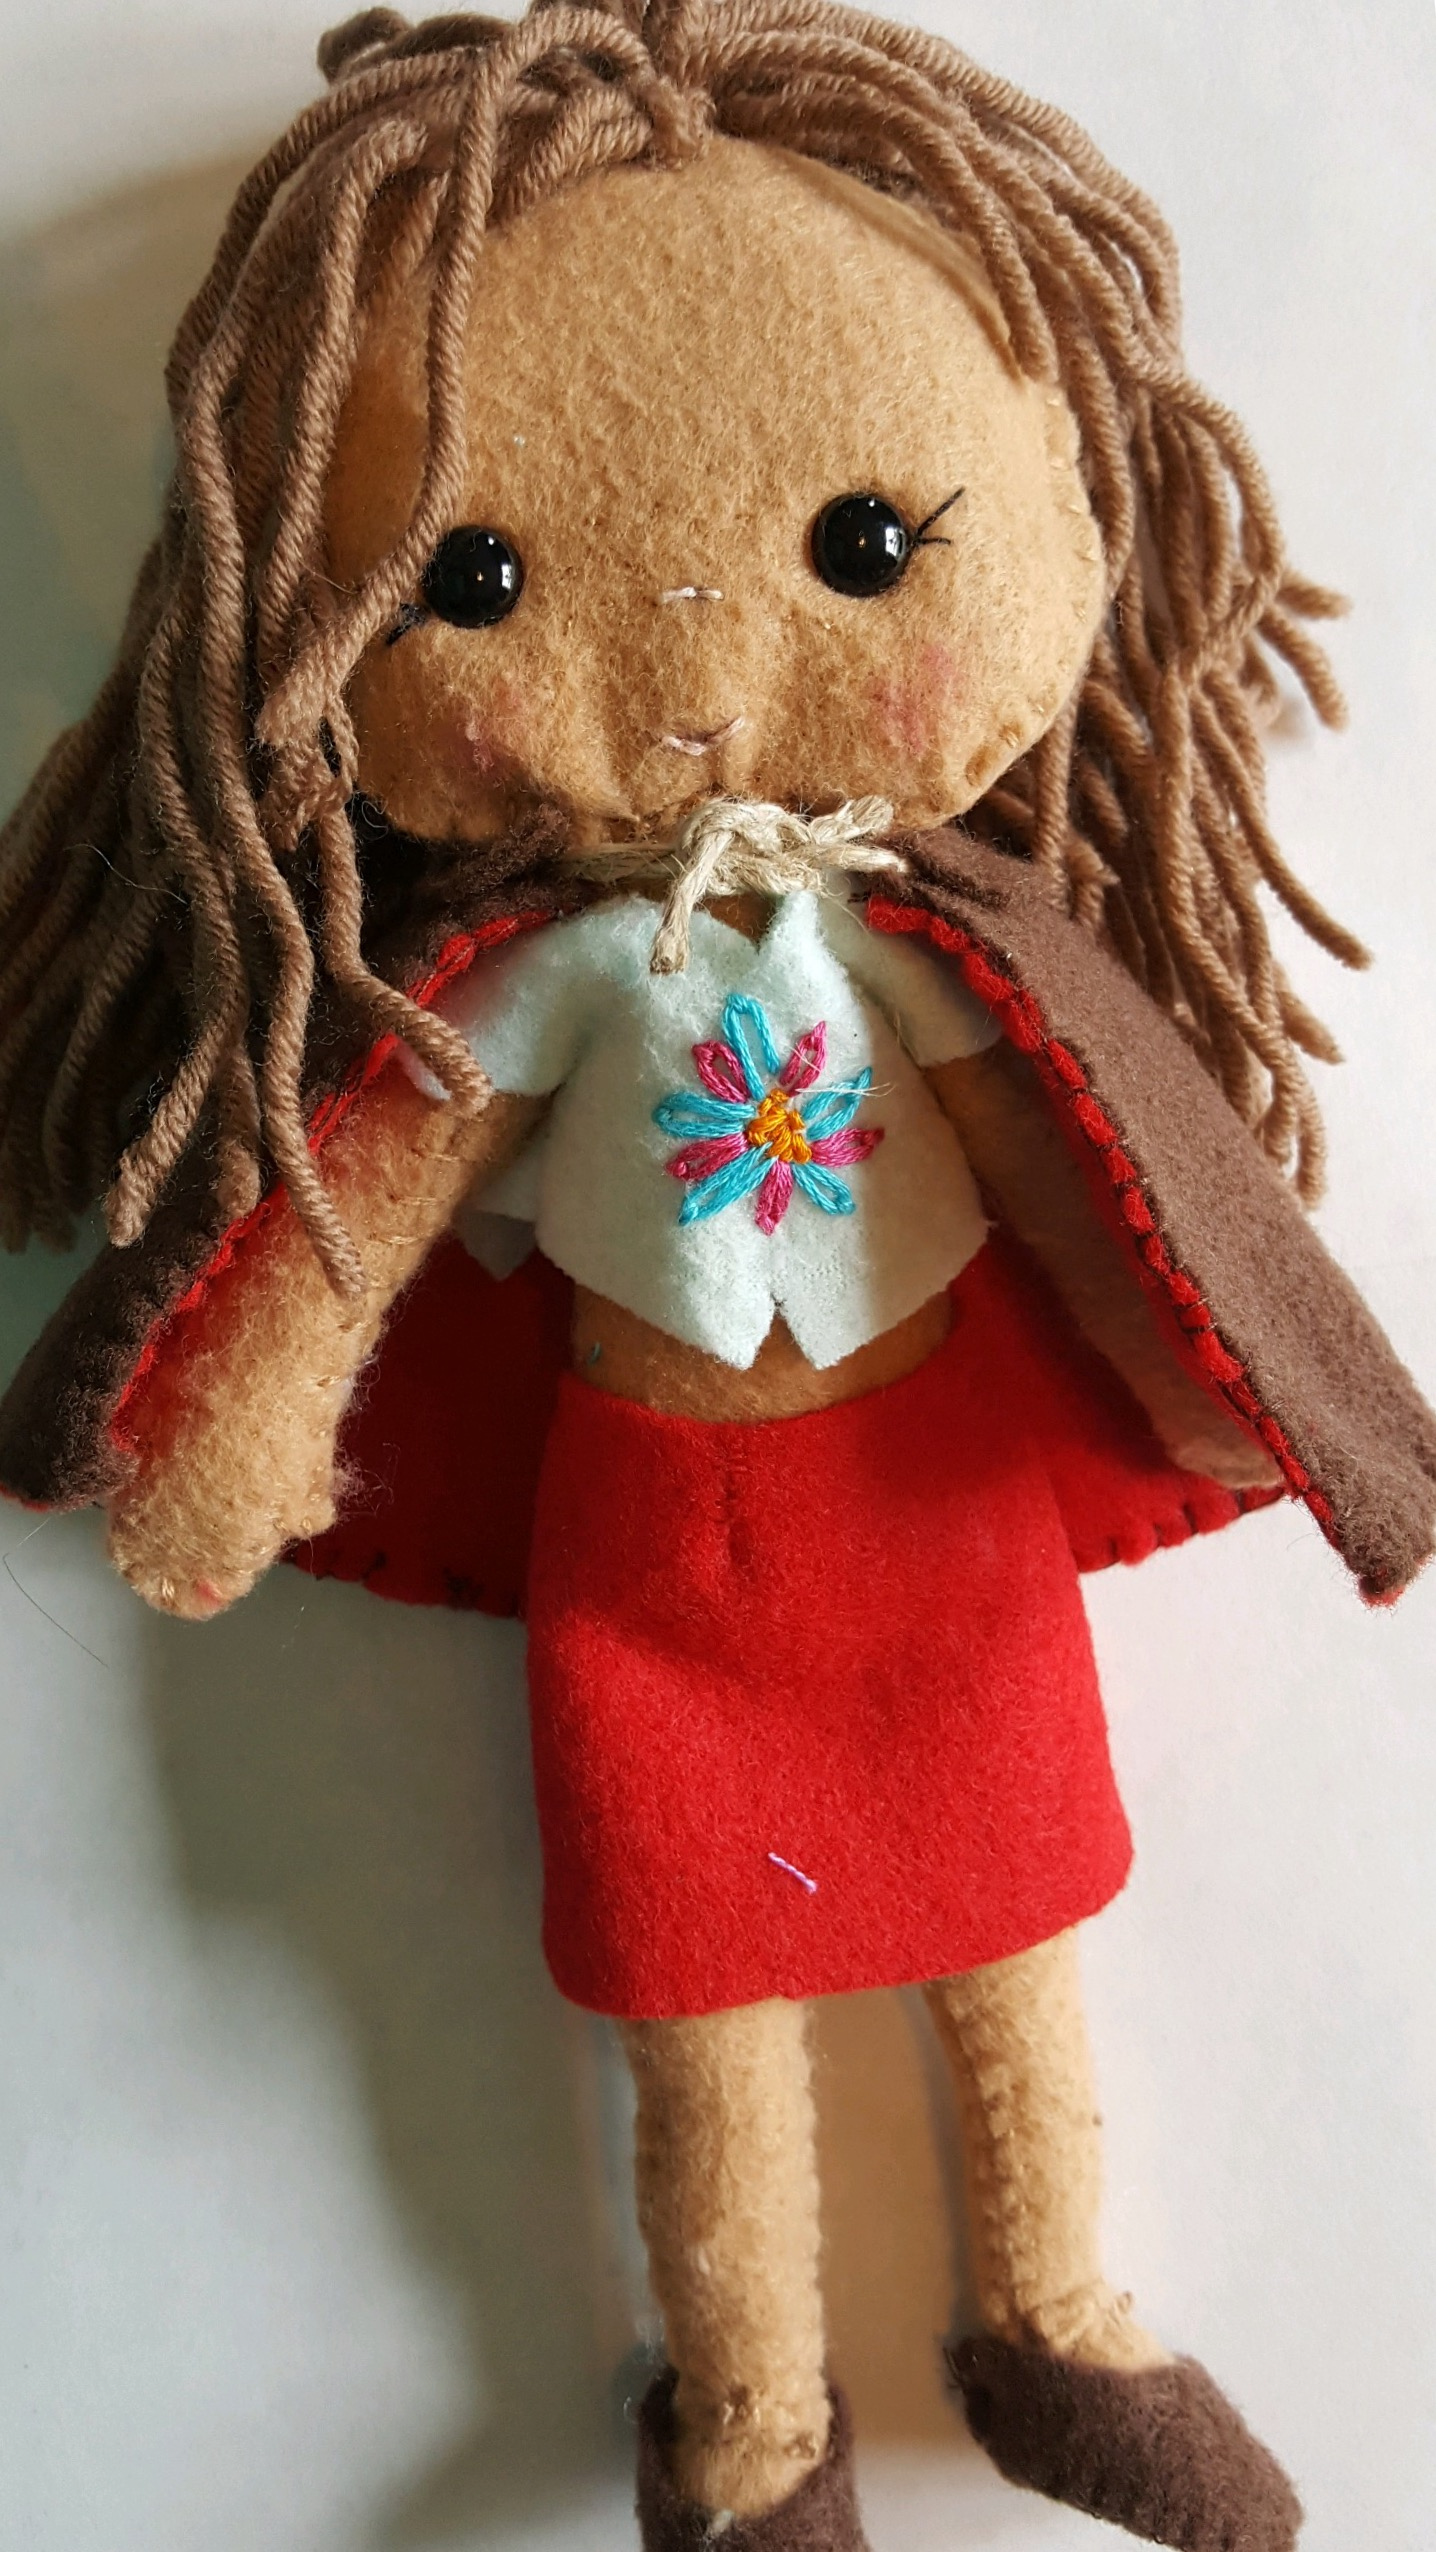 A little embroidery to make things beautiful... (Calista)